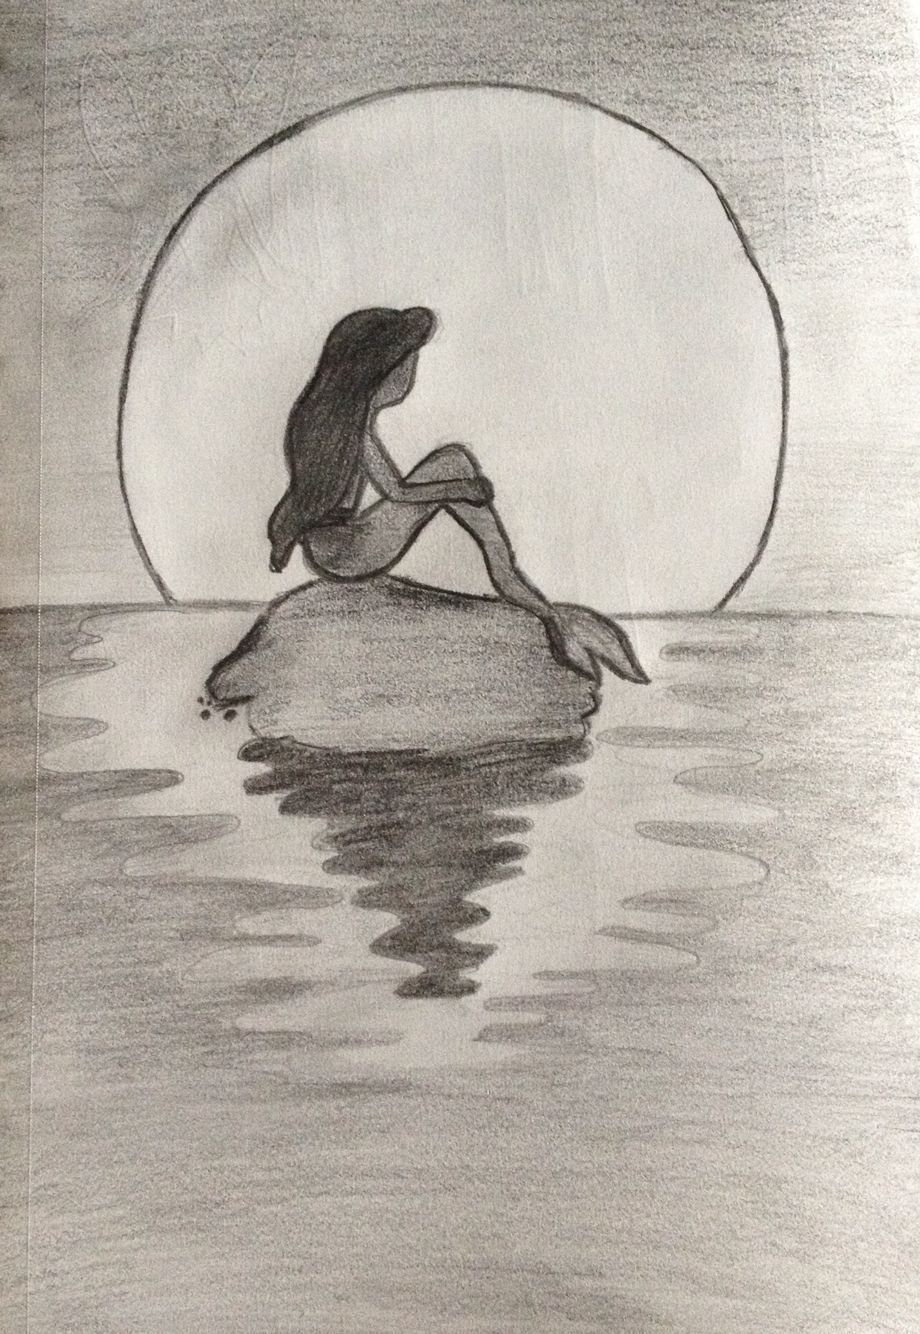 Mermaid sketch more